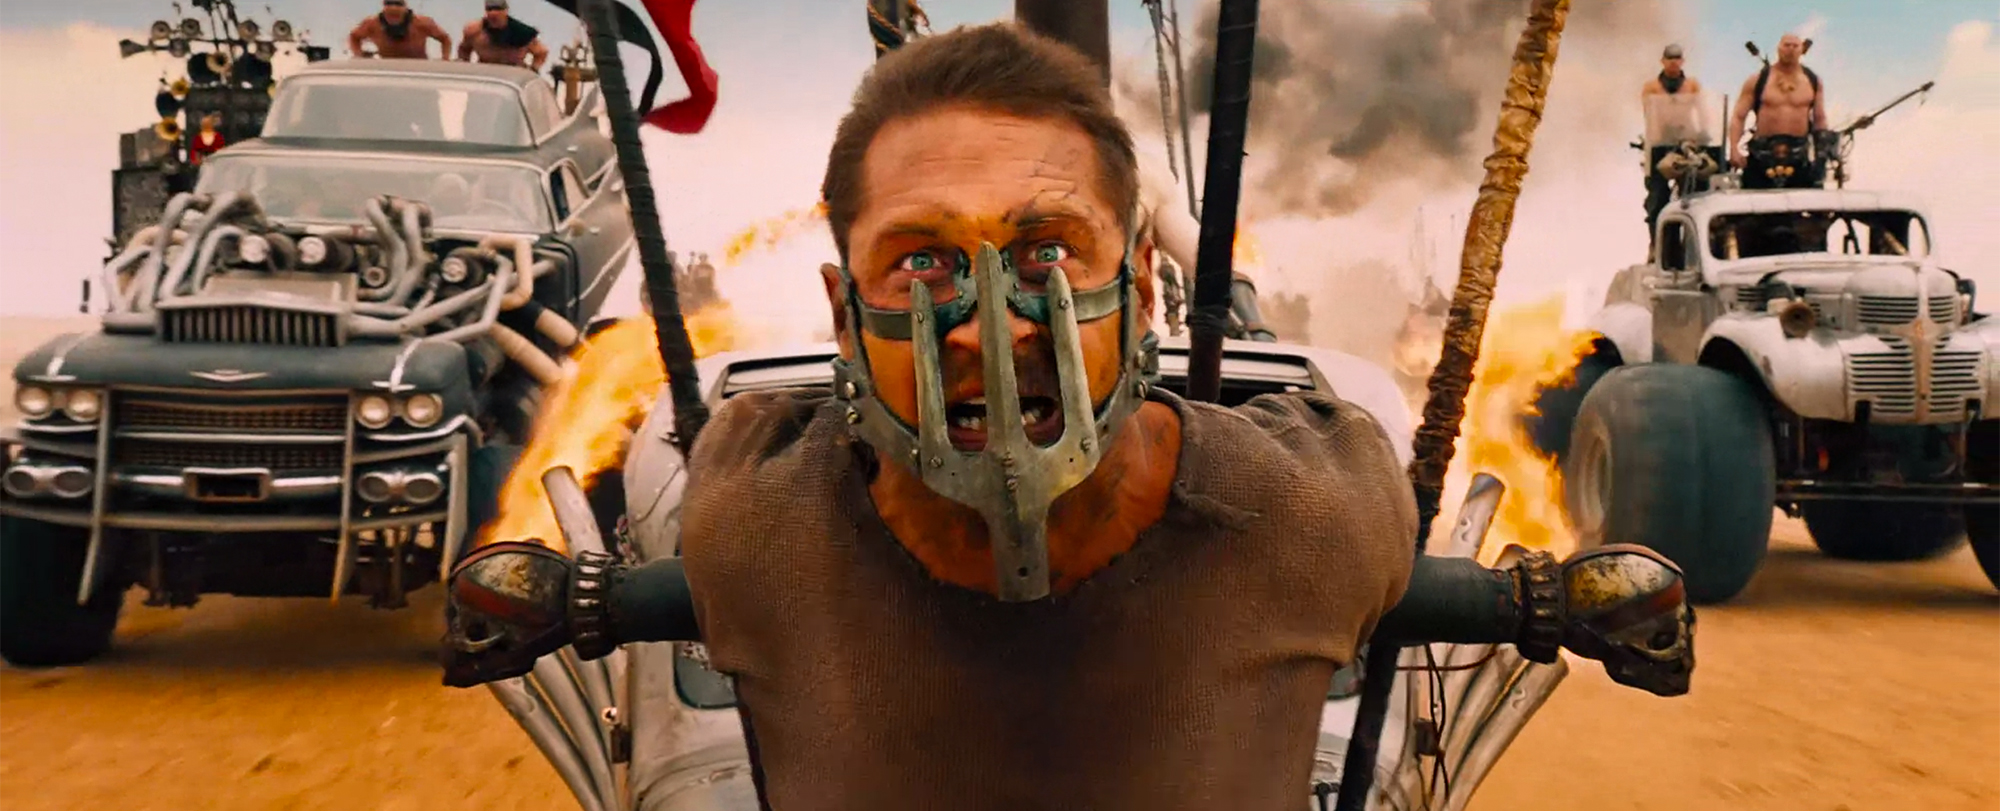 فيلم Mad Max: Fury RoadMad Max: Fury Road